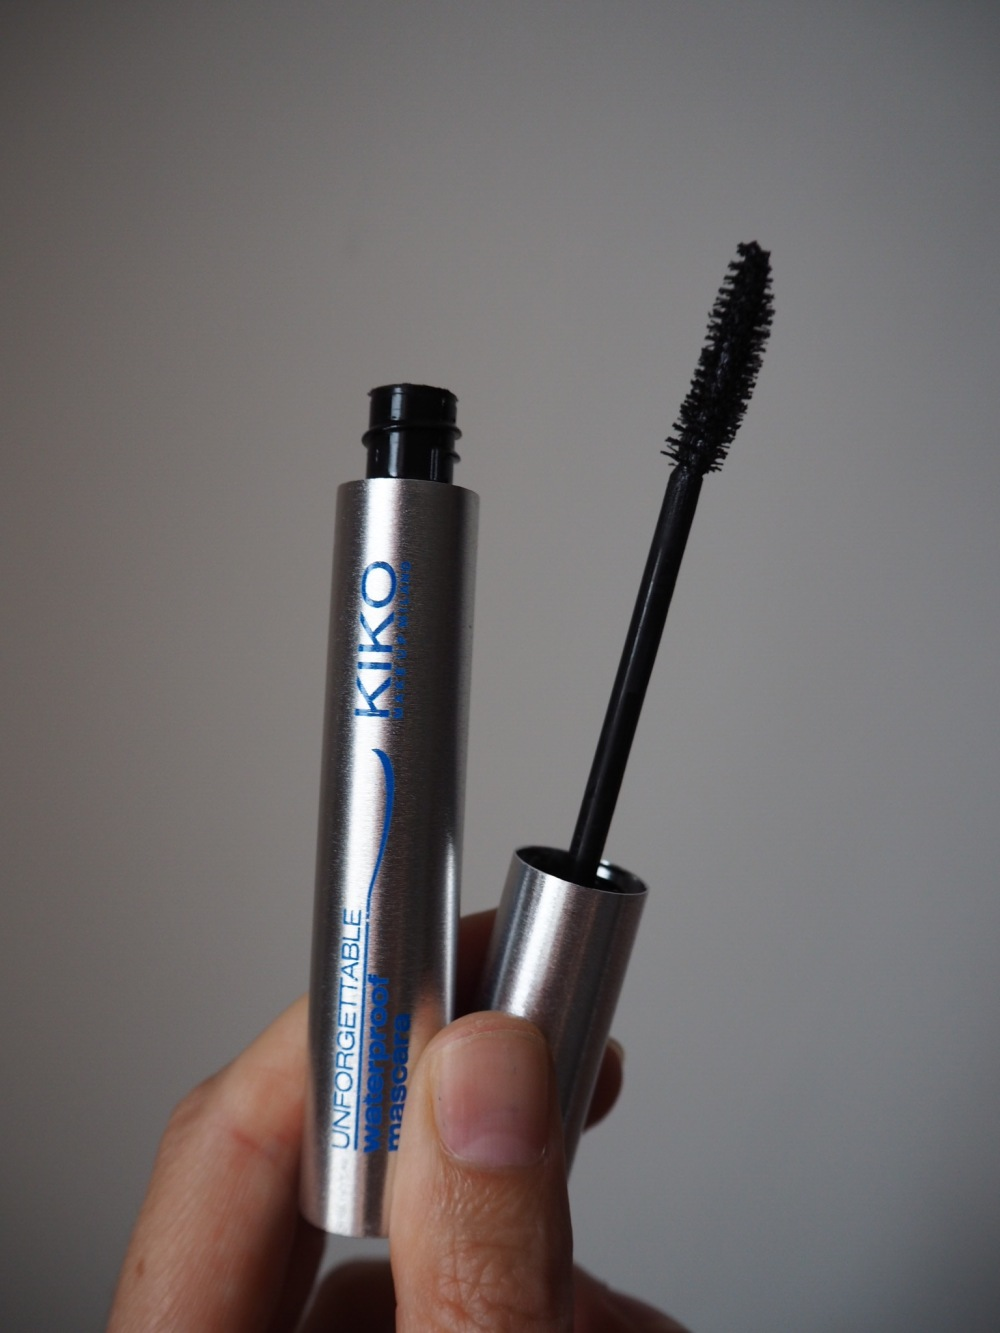 unforgettable waterproof mascara by kiko packaging and brush